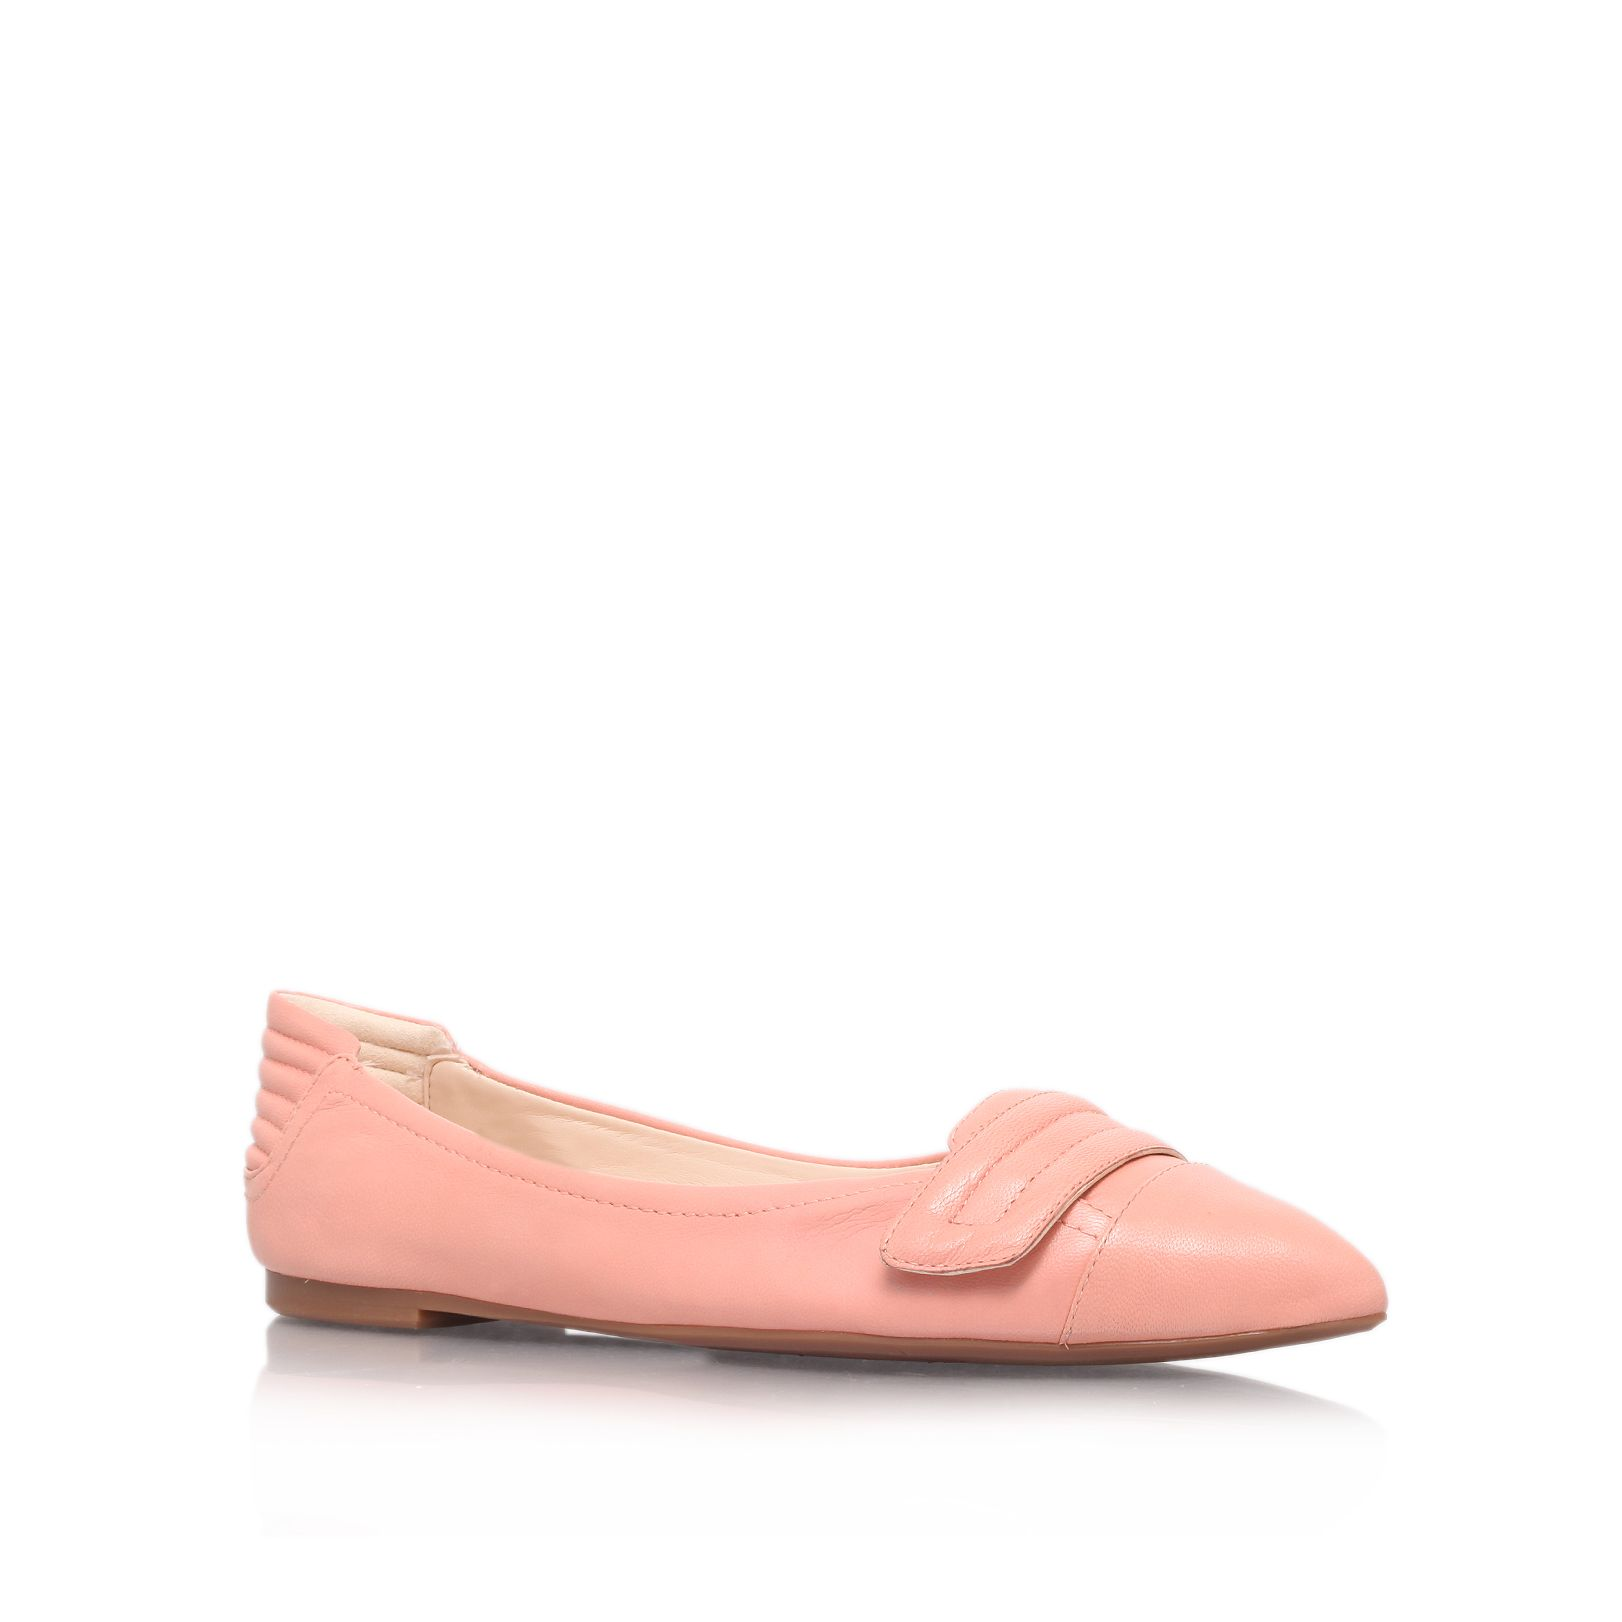 Saramarie flat court shoe